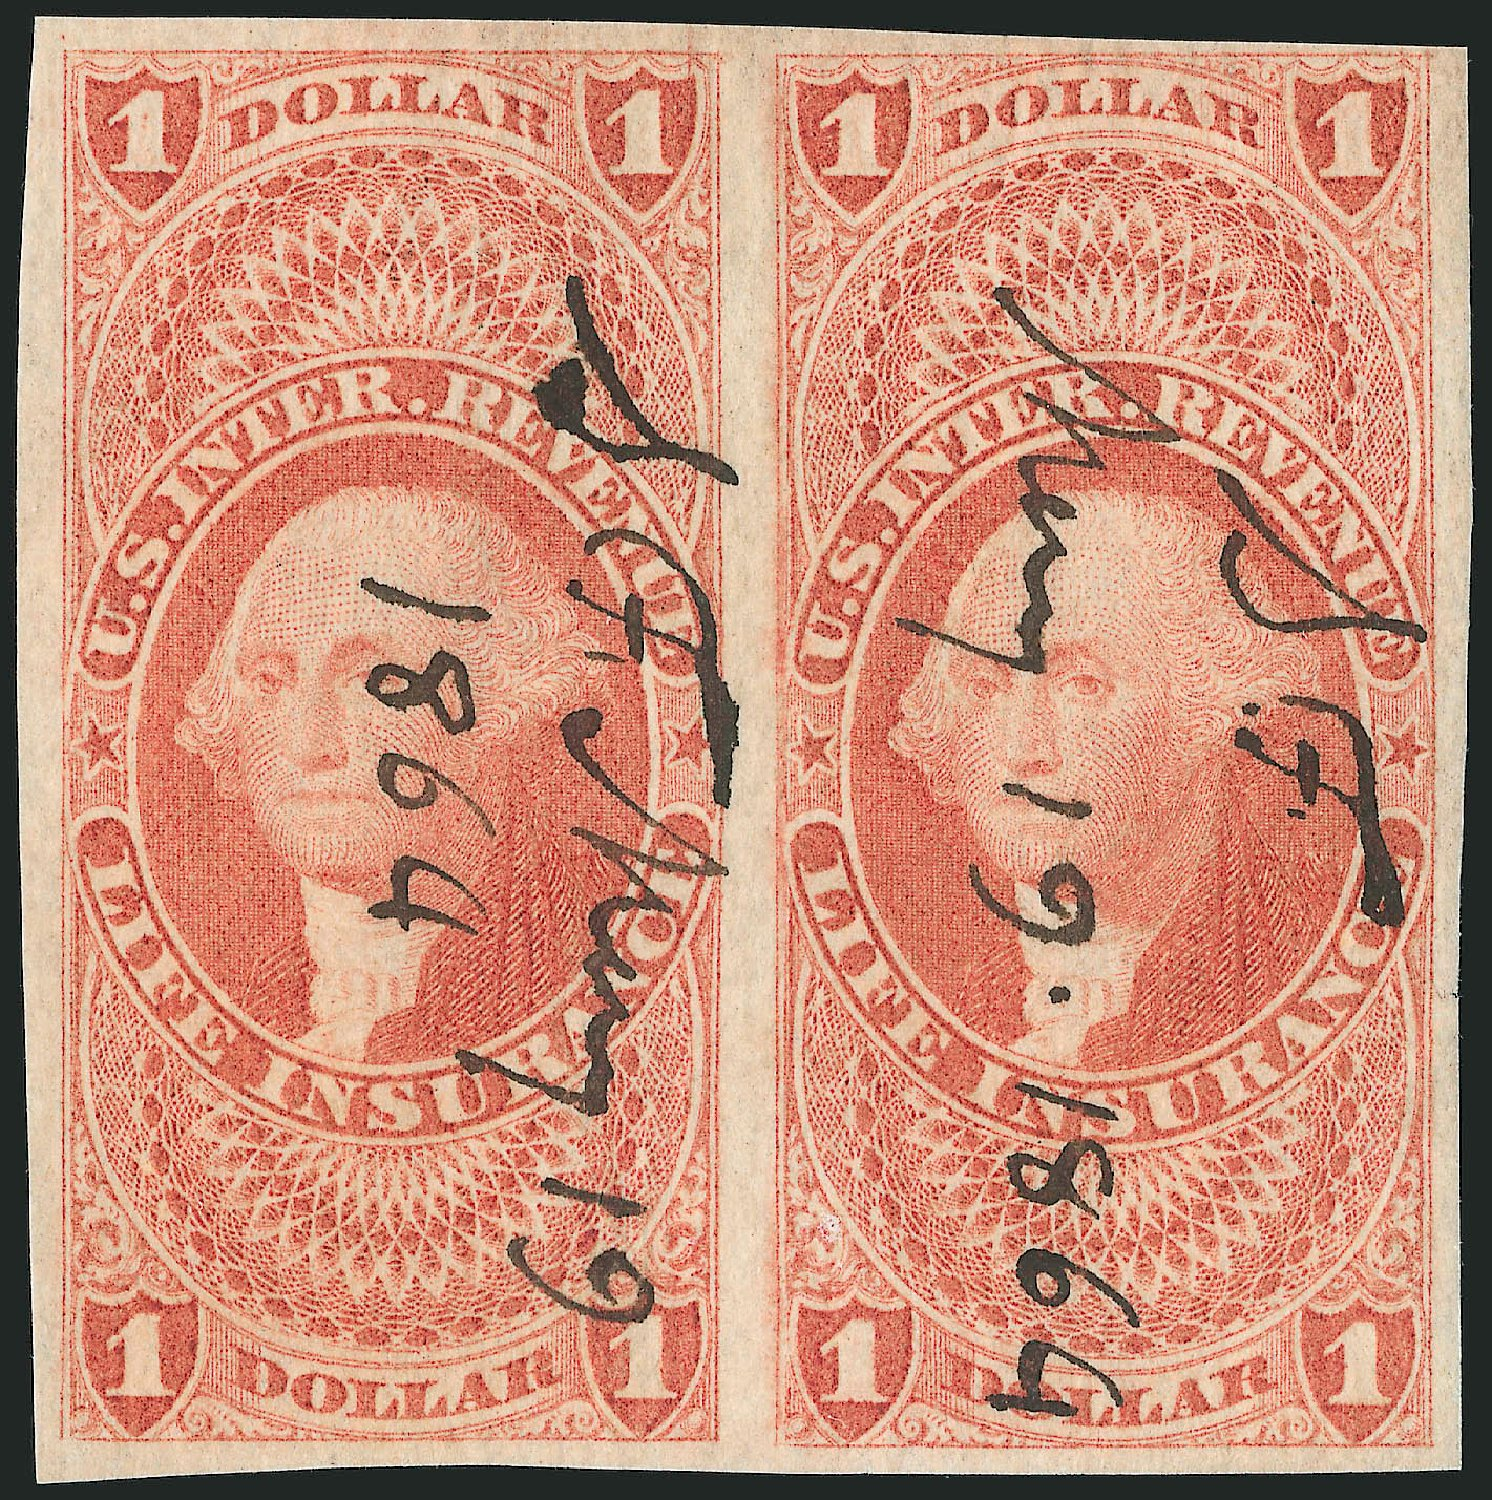 US Stamp Price Scott Catalog #R71: US$1.00 1862 Revenue Life Insurance. Robert Siegel Auction Galleries, Dec 2014, Sale 1089, Lot 234